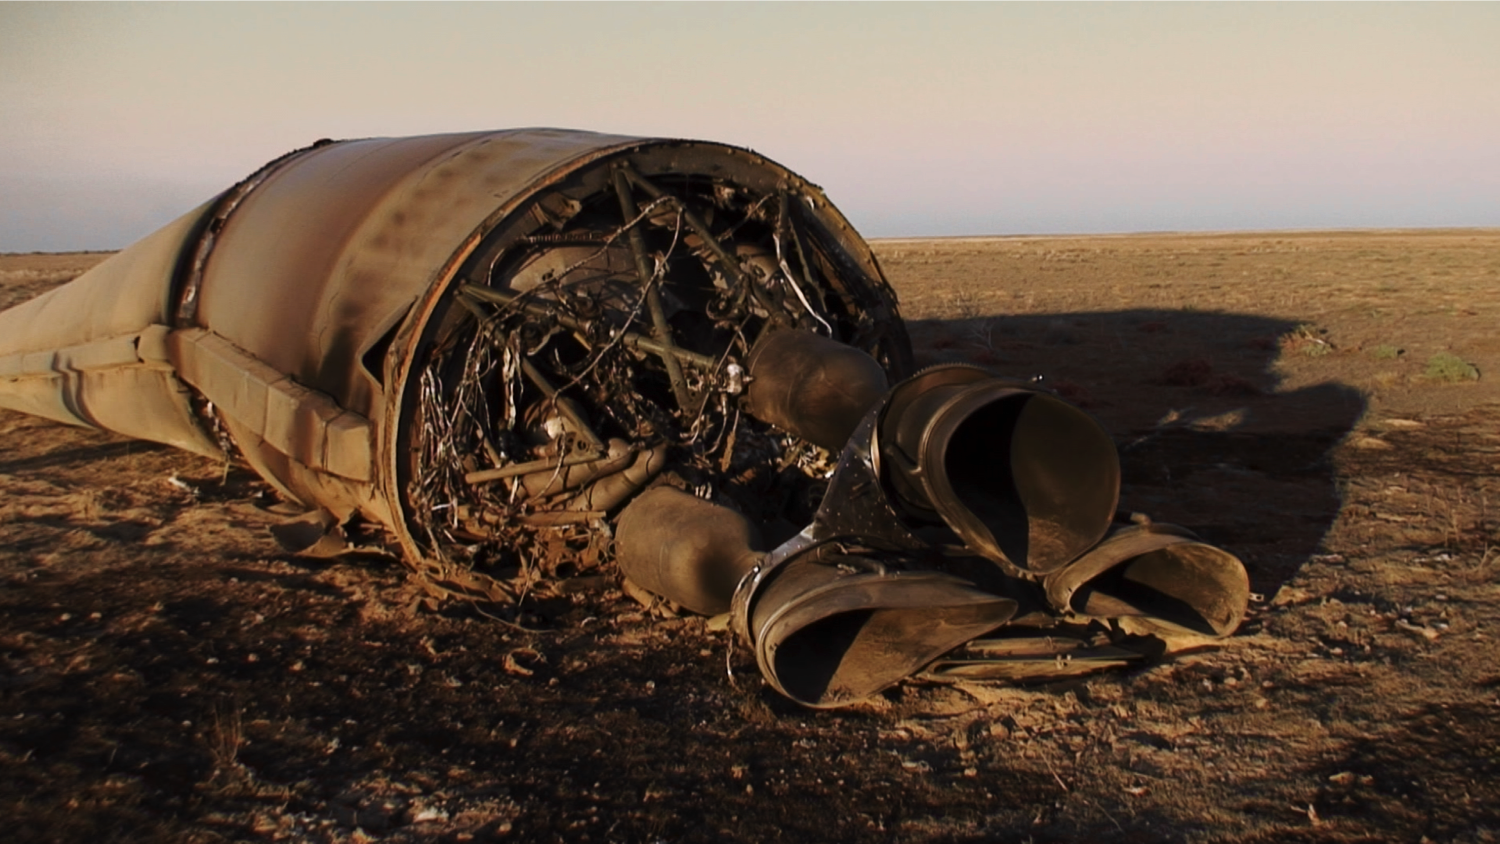 The burned engine has very interesting structures